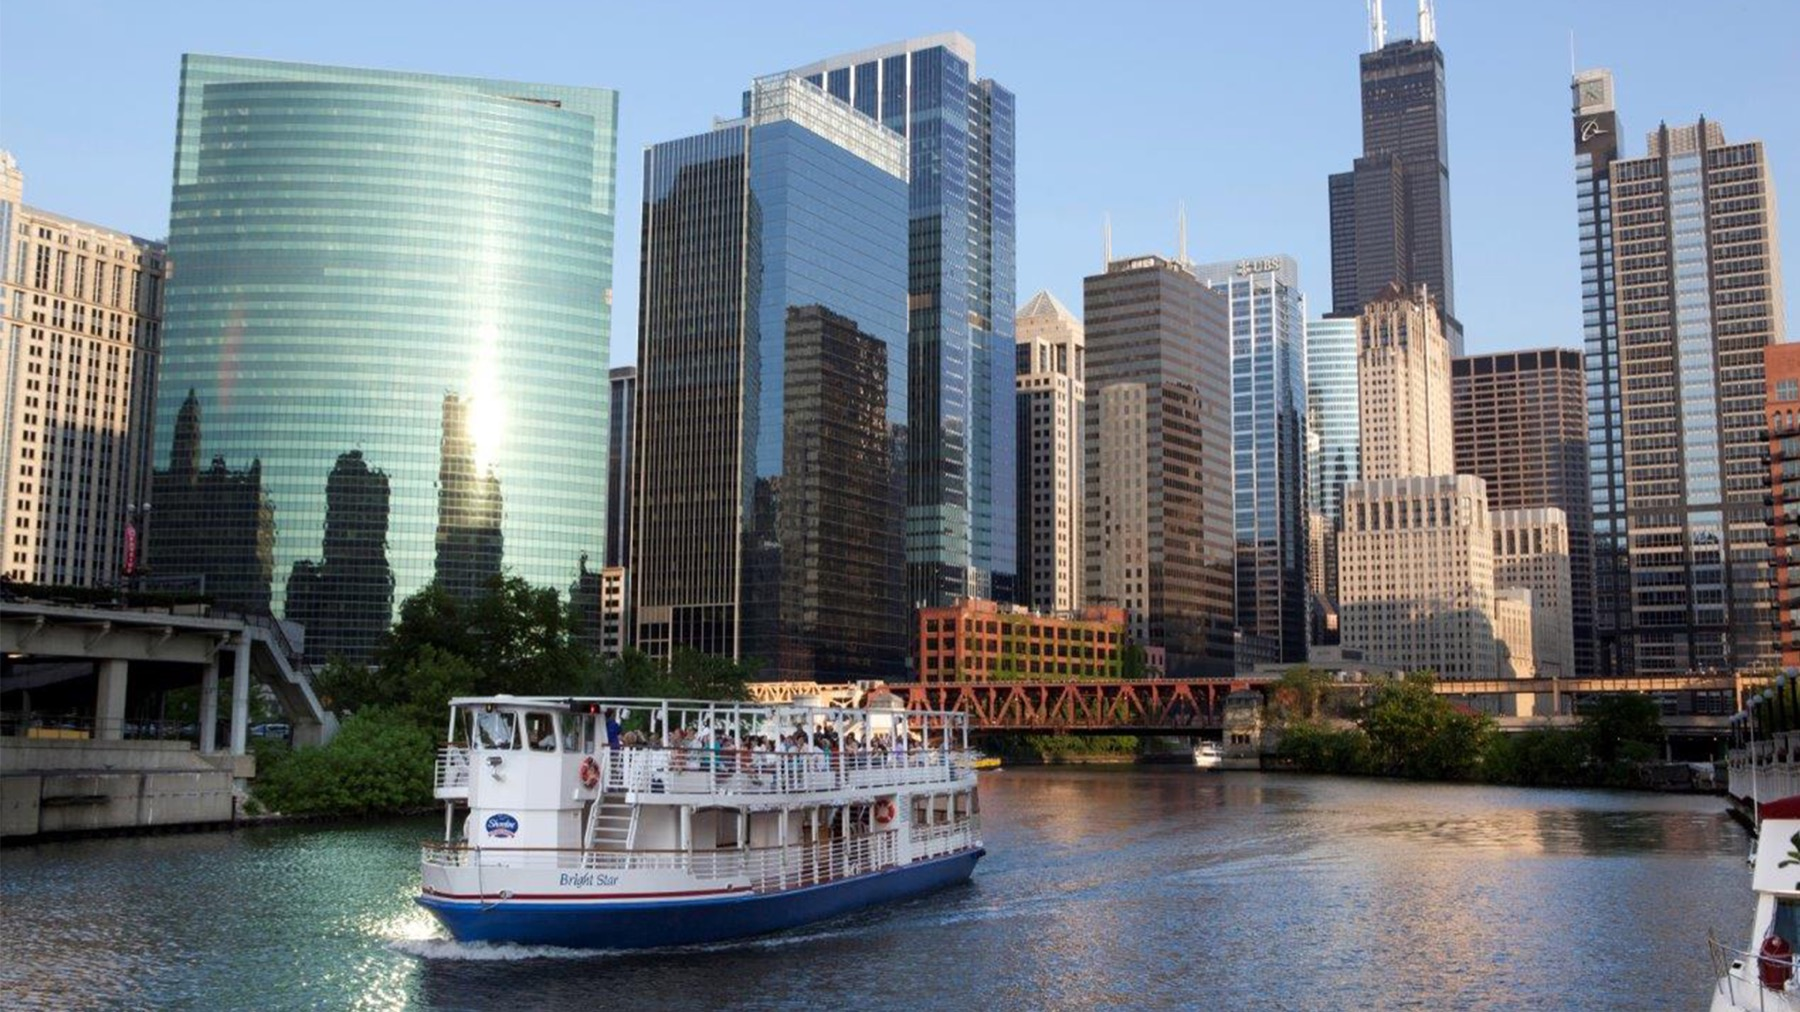 Shoreline Sightseeing Wine Tasting Cruise on the river in Chicago